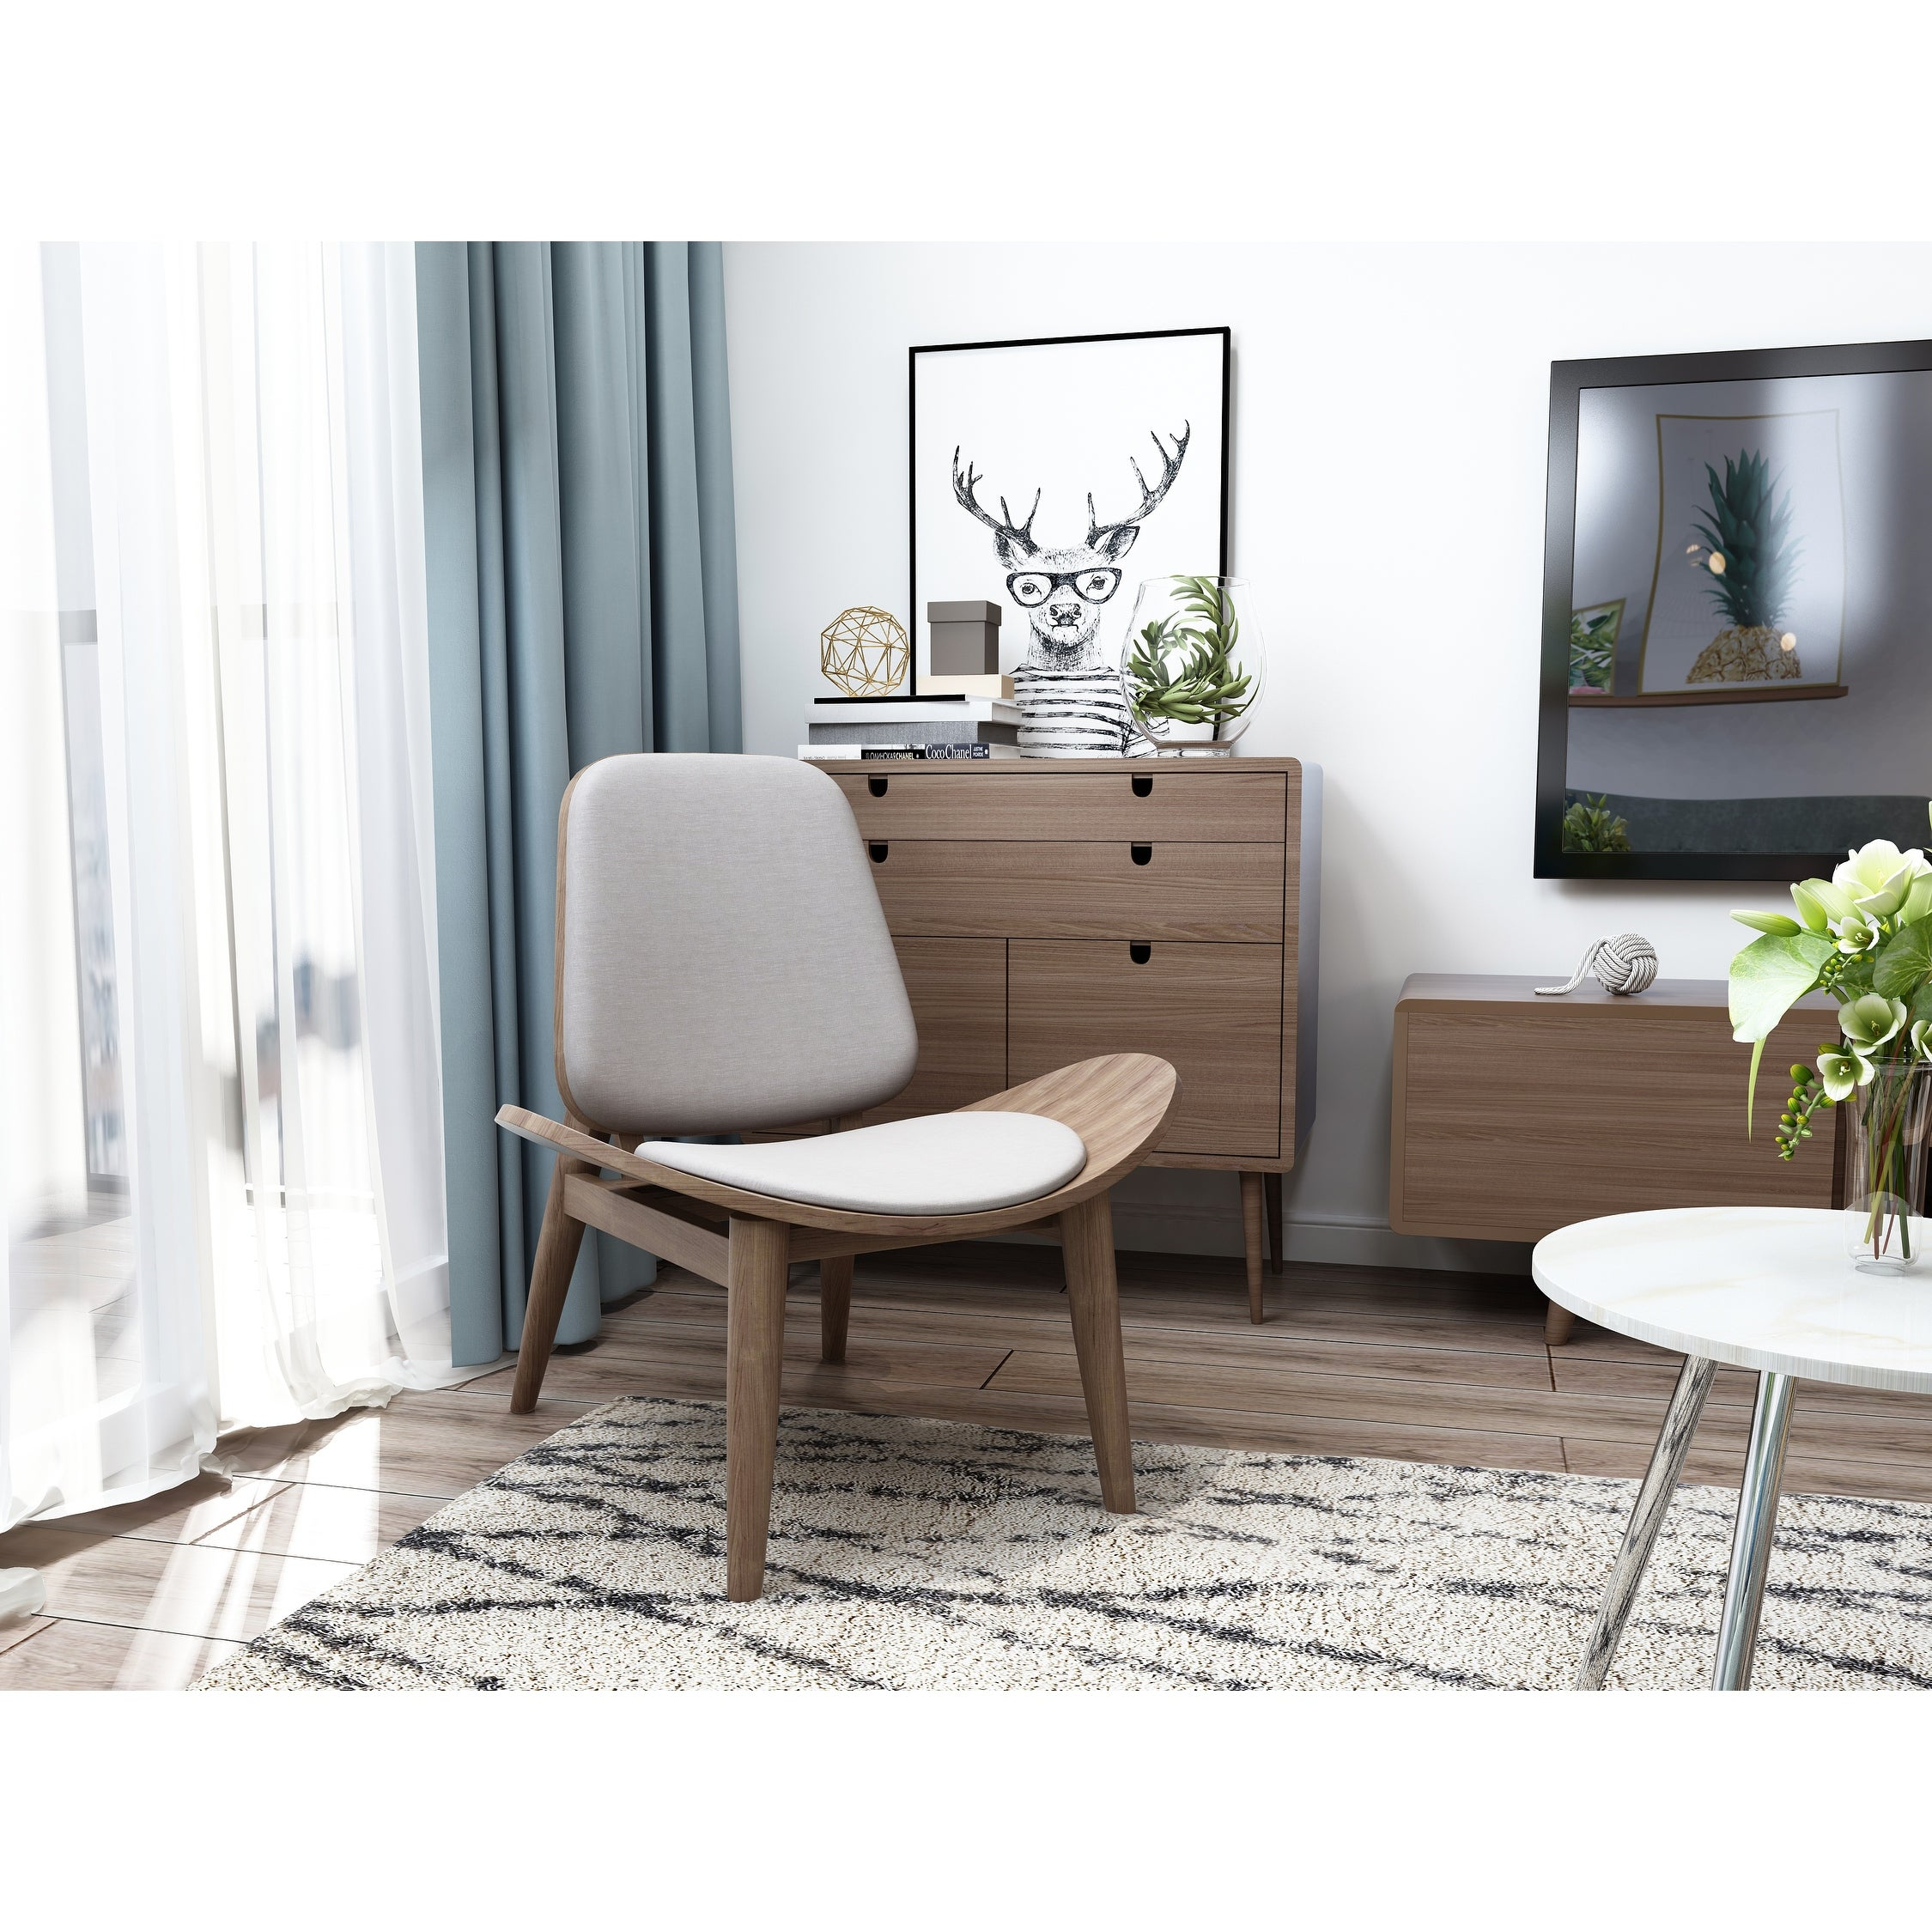 2xhome Modern Fabric Shell Wing Chair Armless Padded Seat Wooden Lounge Living Room Restaurant Office Work